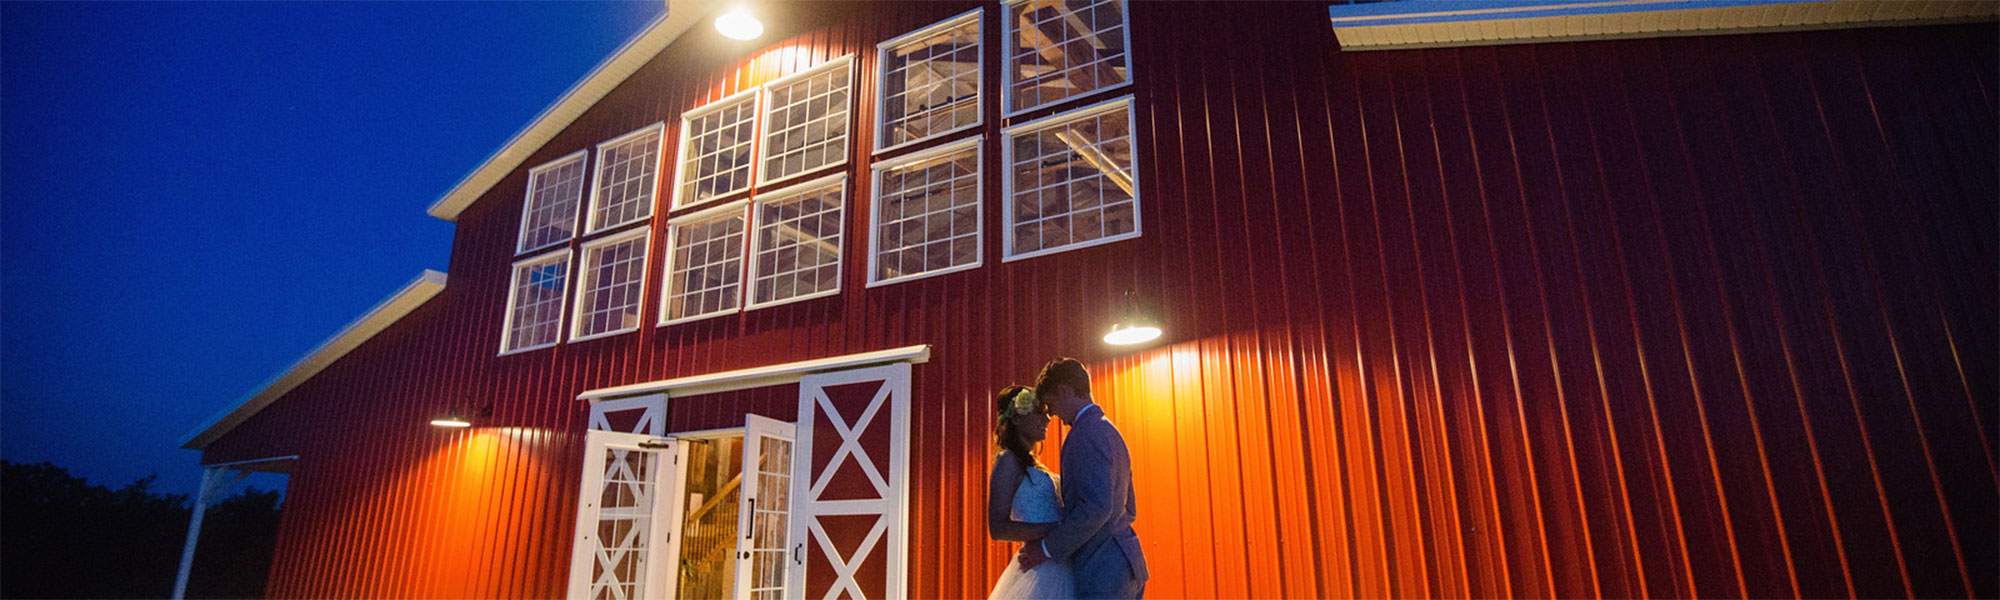 Iowa wedding barn at night